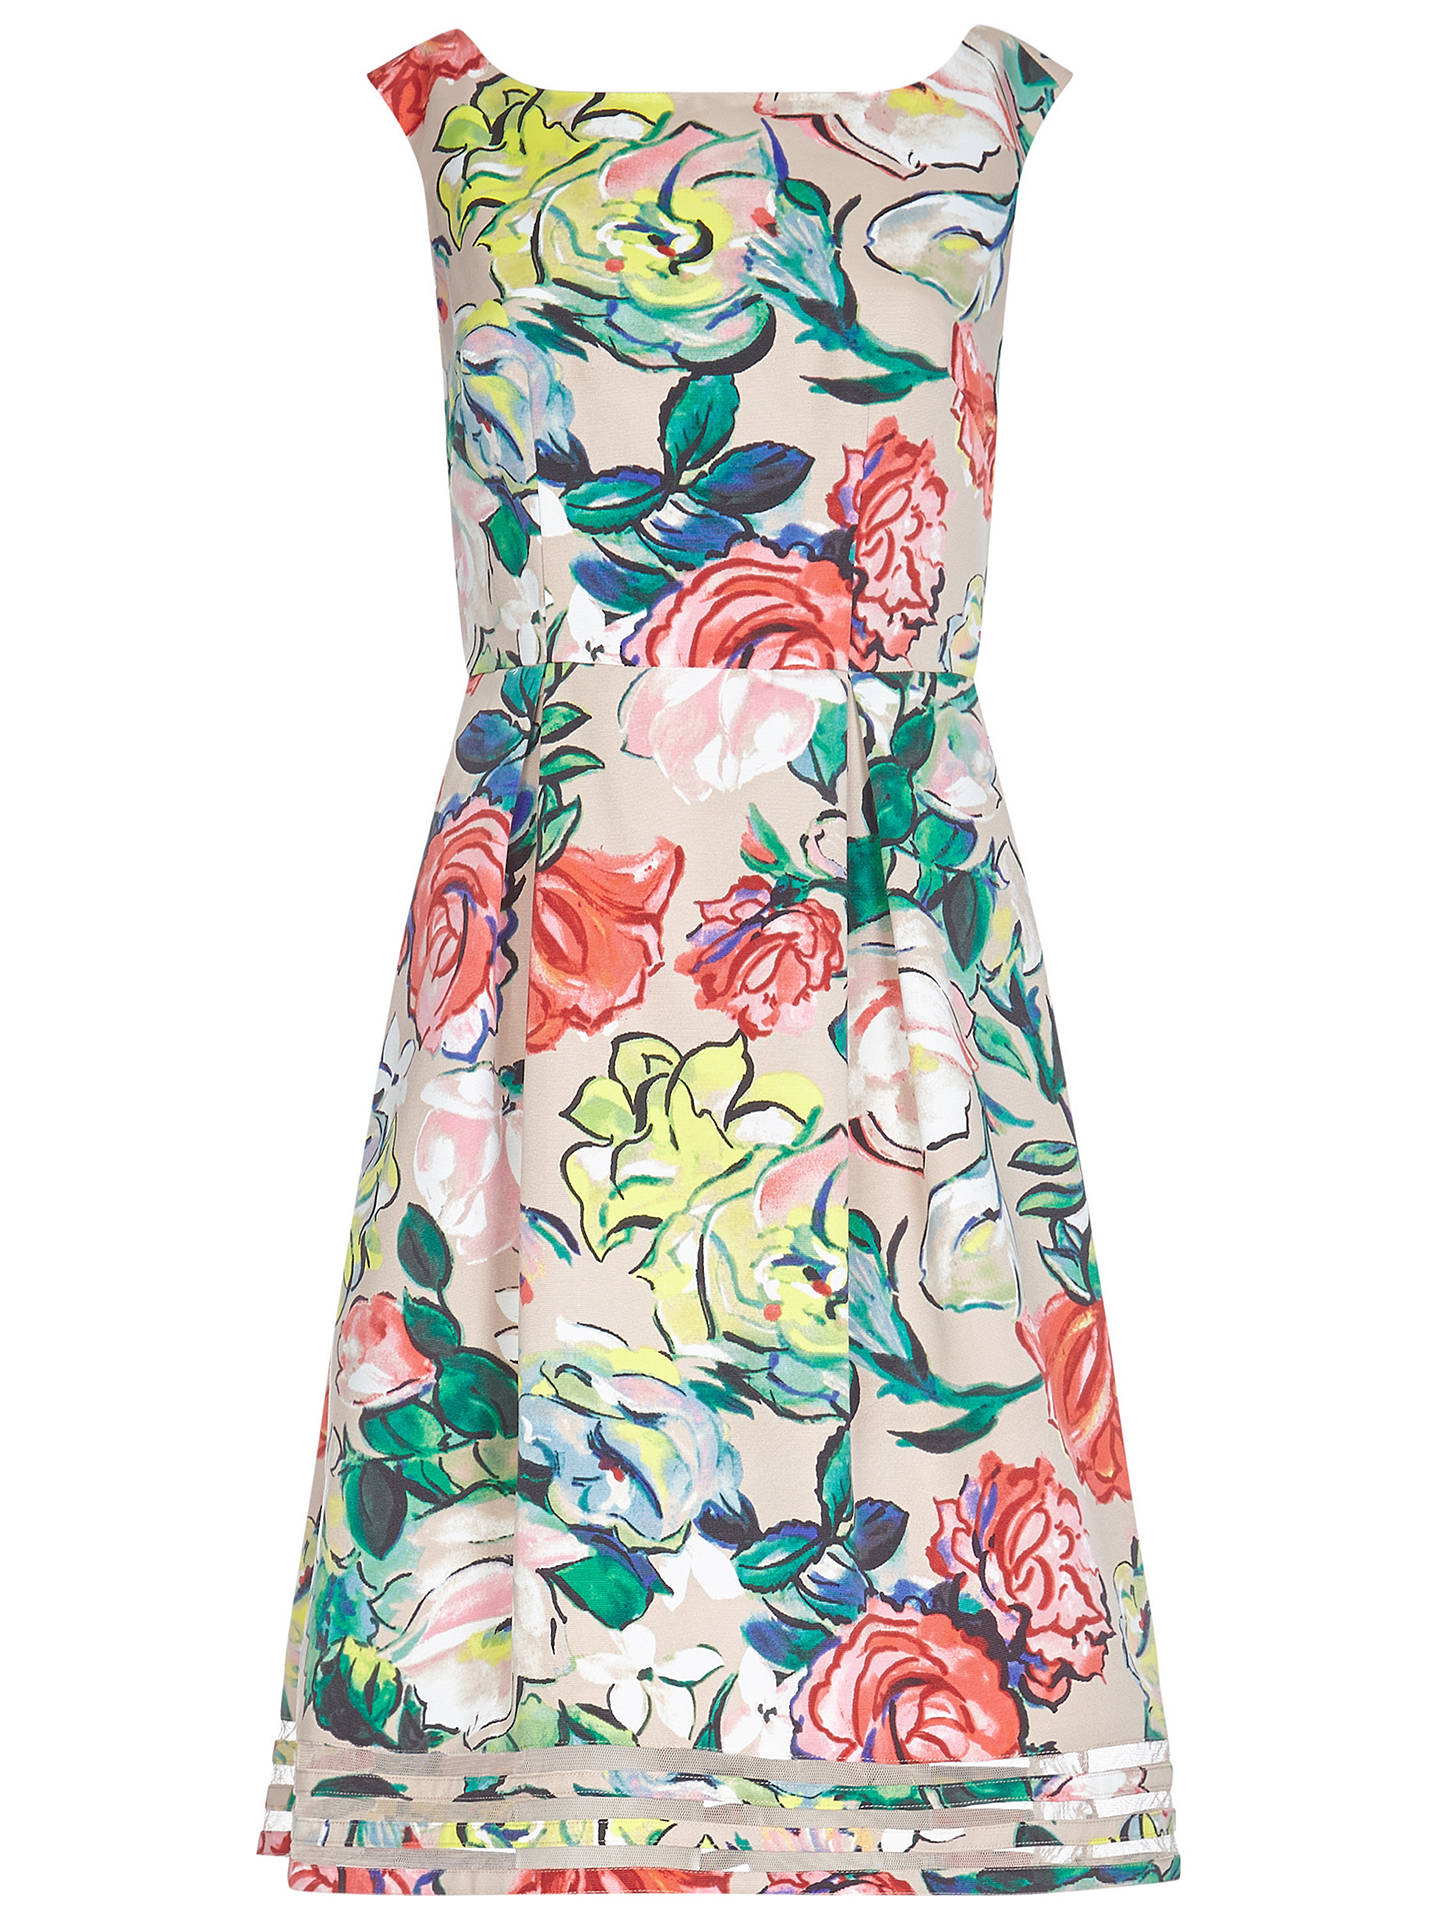 BuyAdrianna Papell Stained Glass Dress, Multi, 8 Online at johnlewis.com